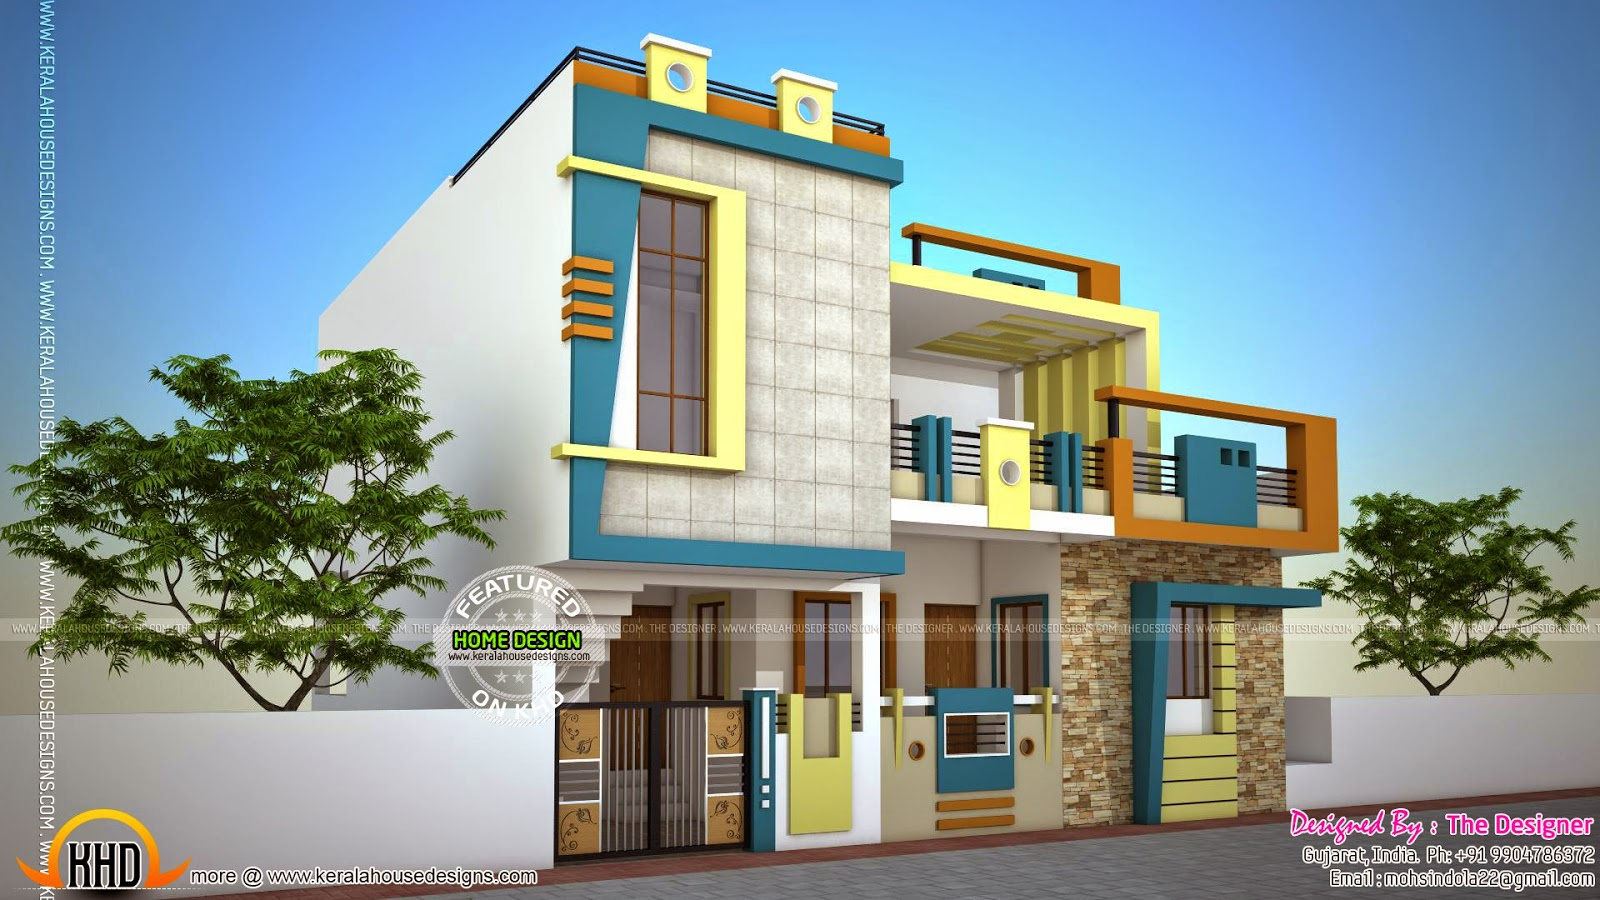 House design for 60 square meter - Contemporary Style House In Gujarat India